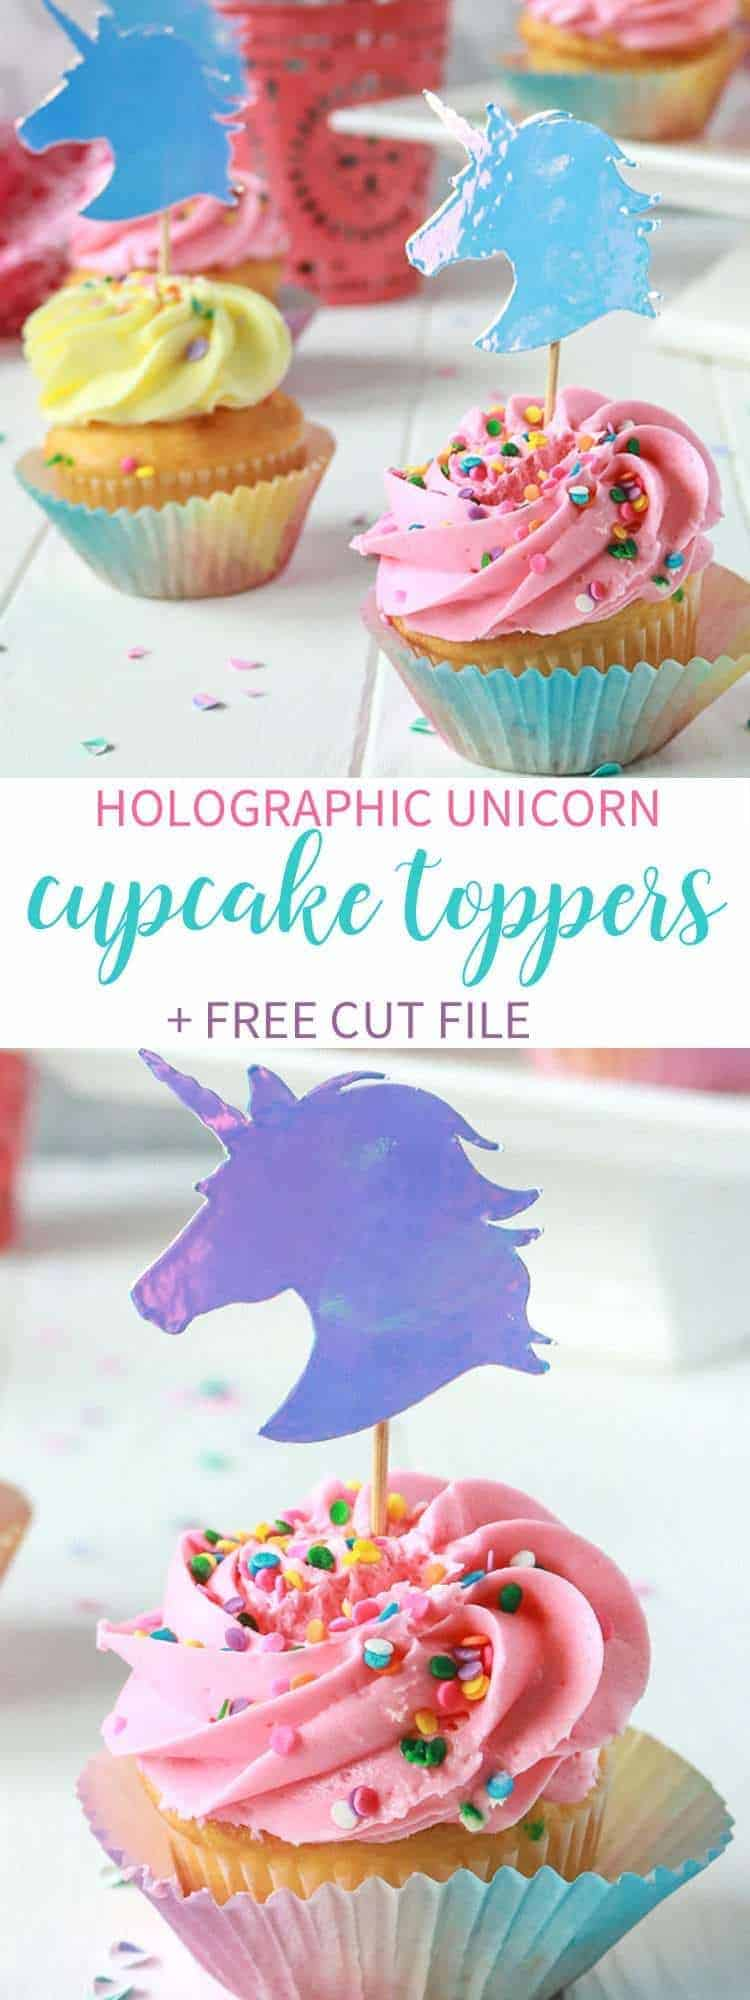 Holographic-Unicorn-Cupcake-Toppers